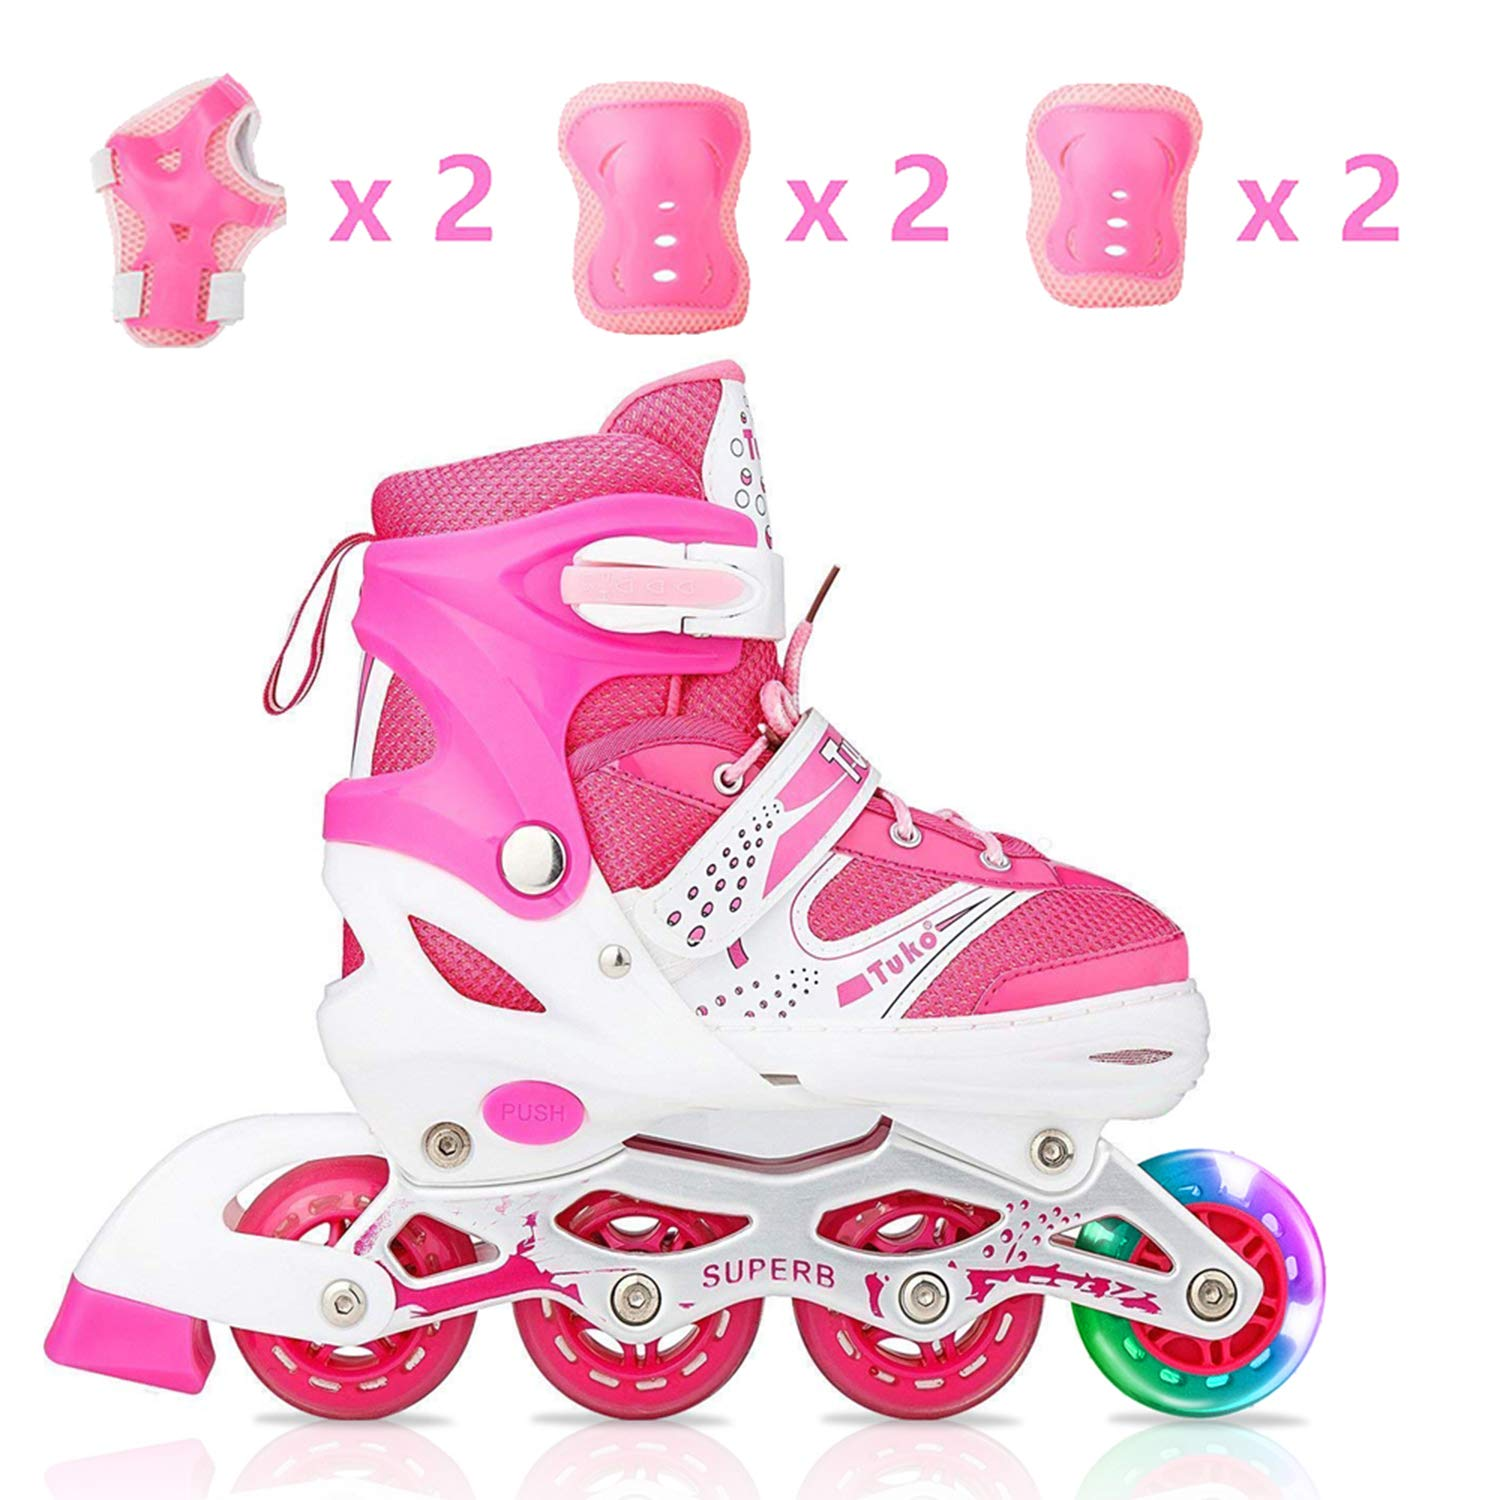 Tuko Adjustable Inline Skates for Girls with Protective Pads (Little Kid 12M/13M/1M) by Tuko